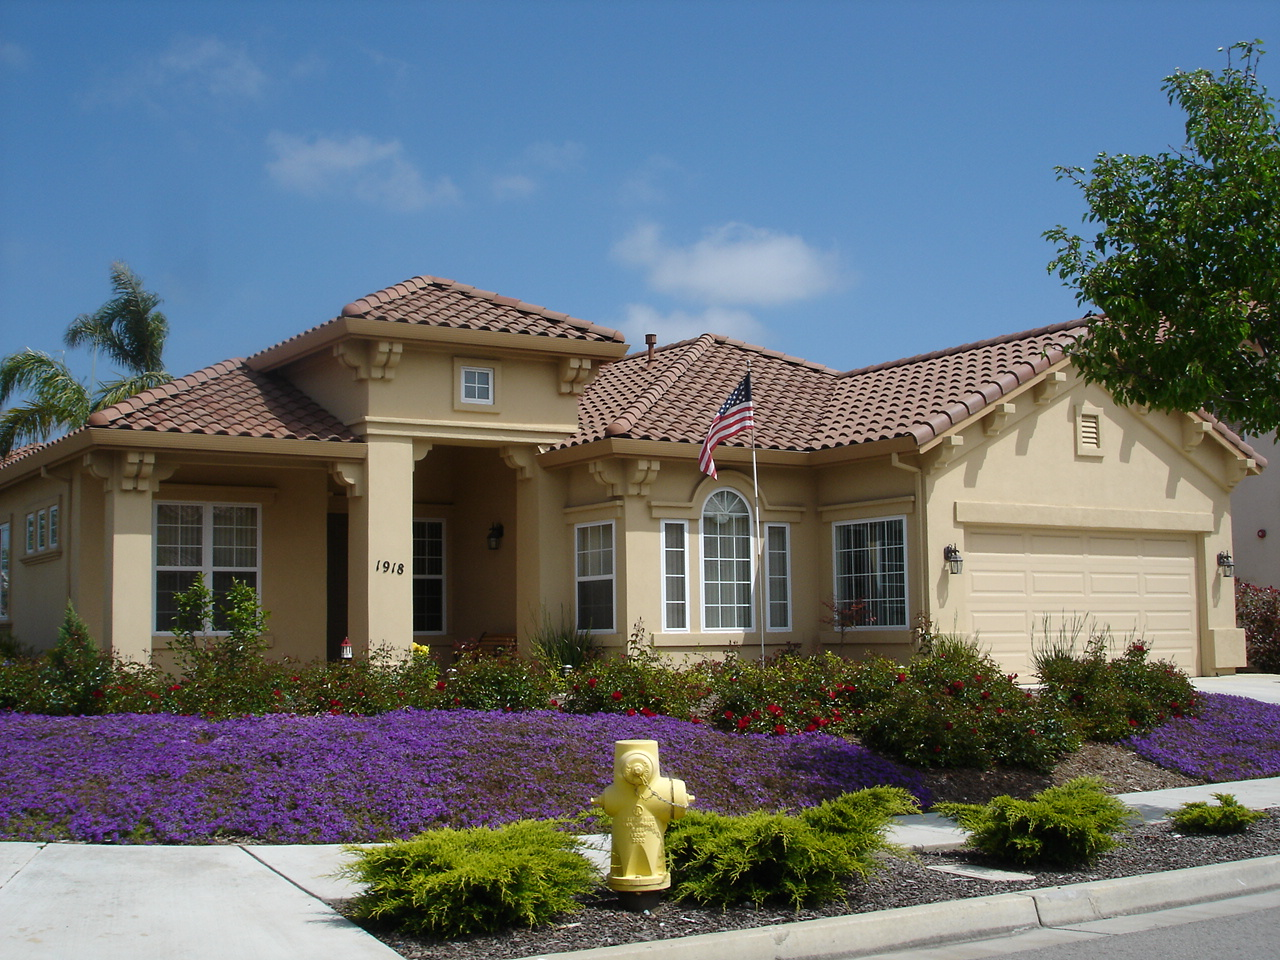 Cost to build a new home in california - Cost To Build A New Home In California 10